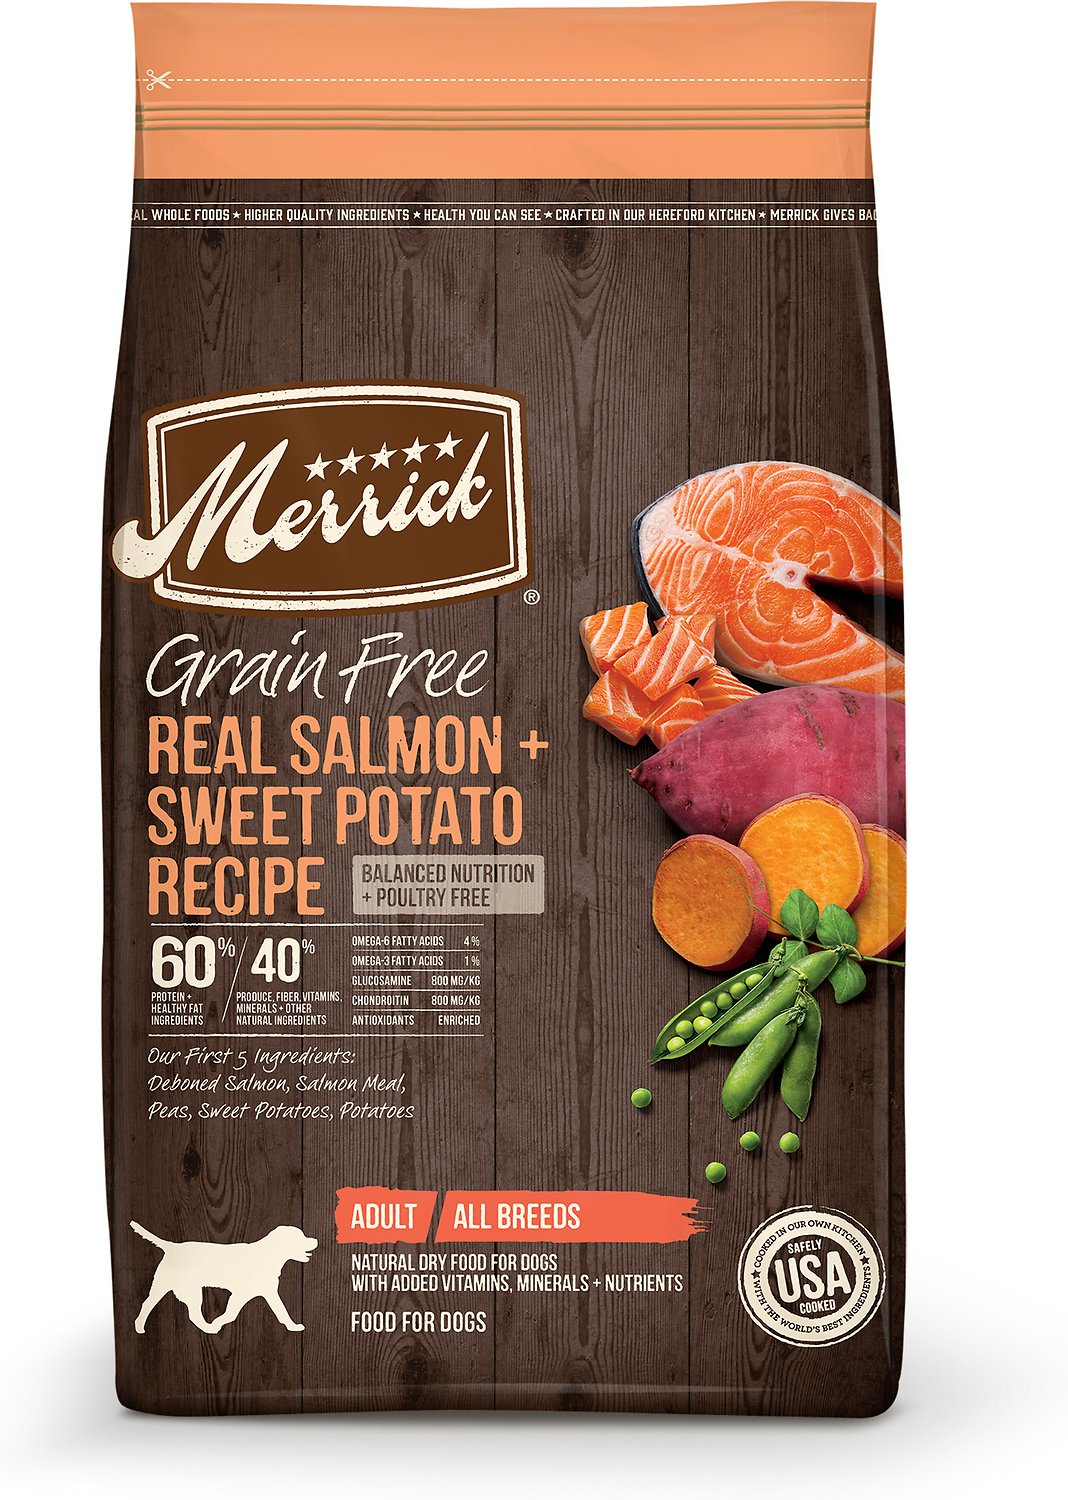 Merrick Grain-Free Real Salmon & Sweet Potato Recipe Adult Dry Dog Food Image